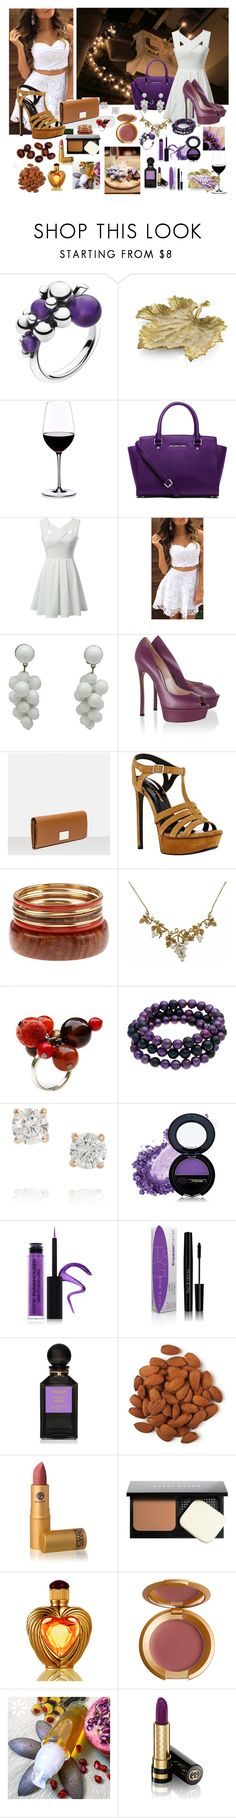 """""""##12"""" by edin-levic ❤ liked on Polyvore featuring Georg Jensen, Michael Aram, WALL, Riedel, Salsa, MICHAEL Michael Kors, Casadei, Yves Saint Laurent, Sipora Aguia and Honora"""